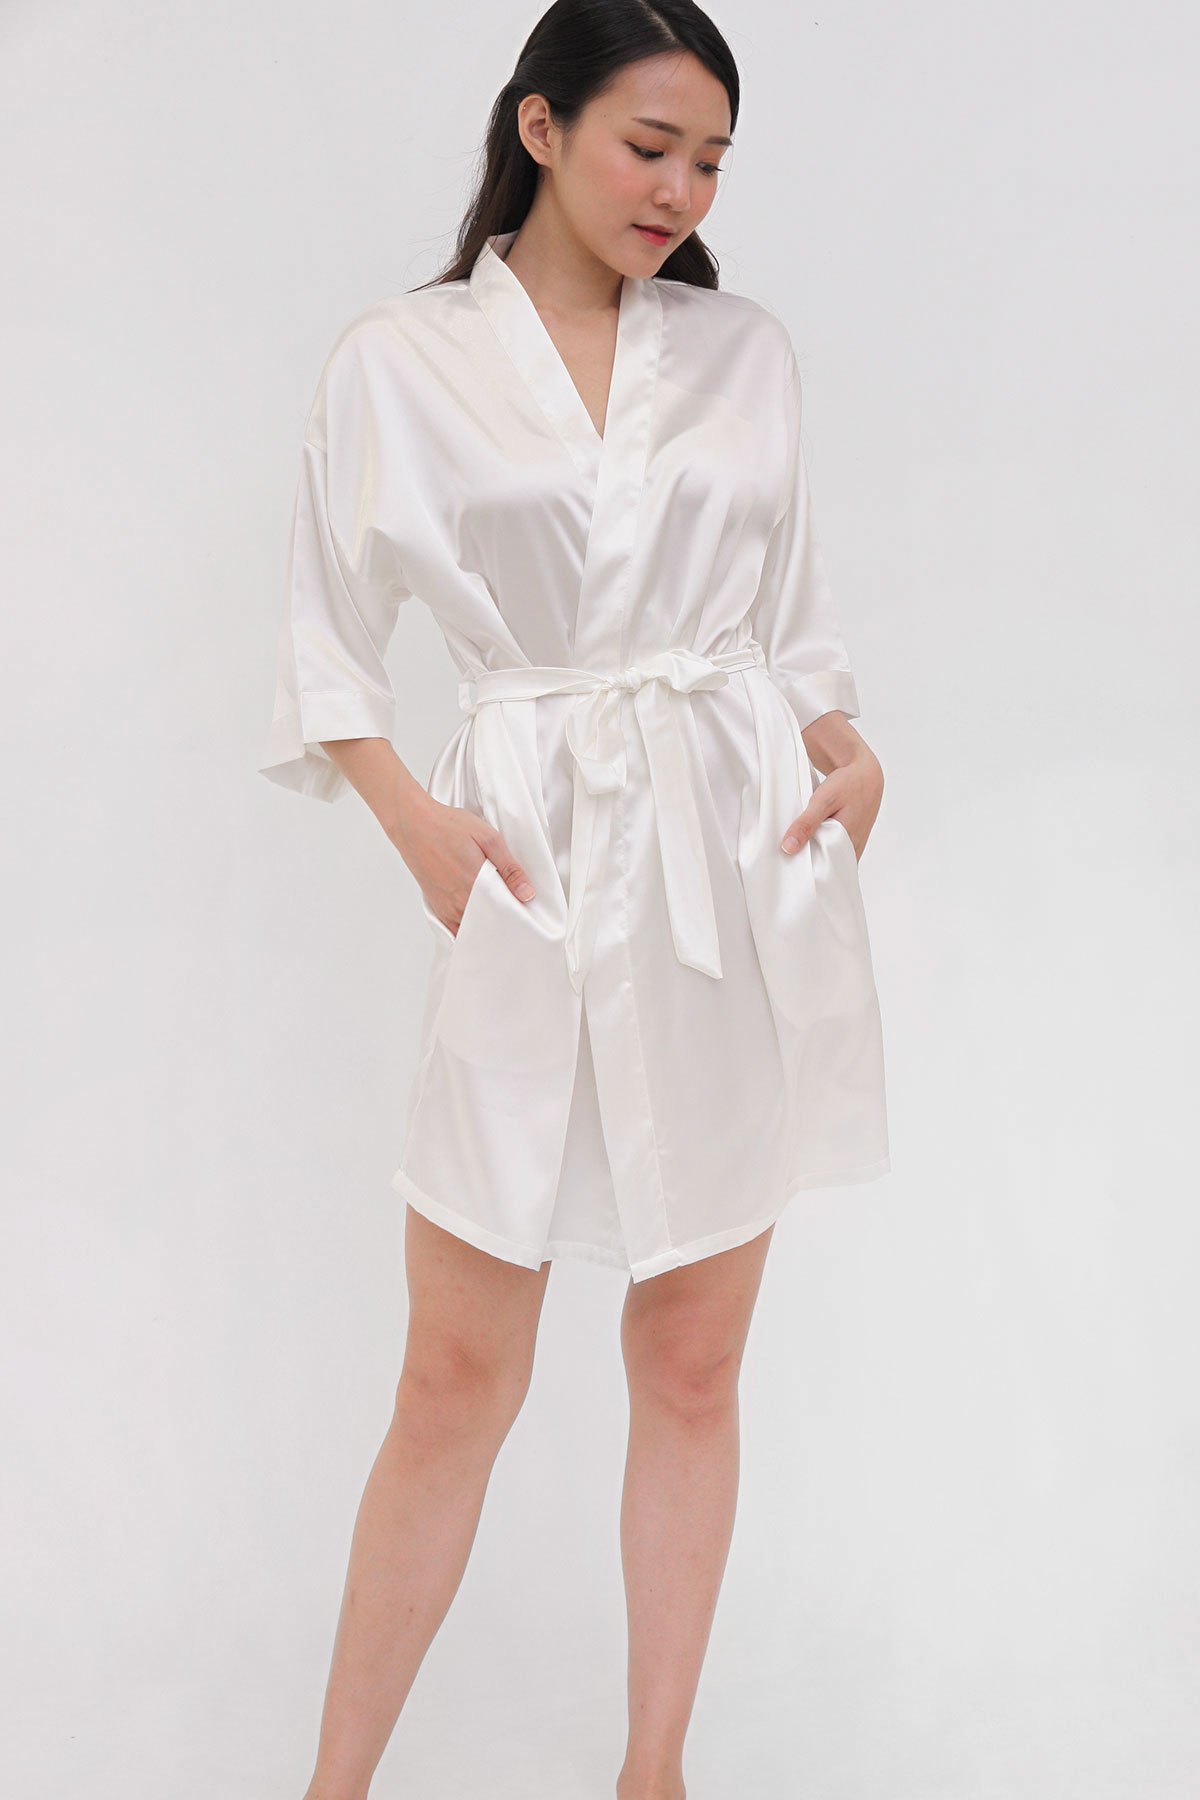 Luxe Satin Robe in White